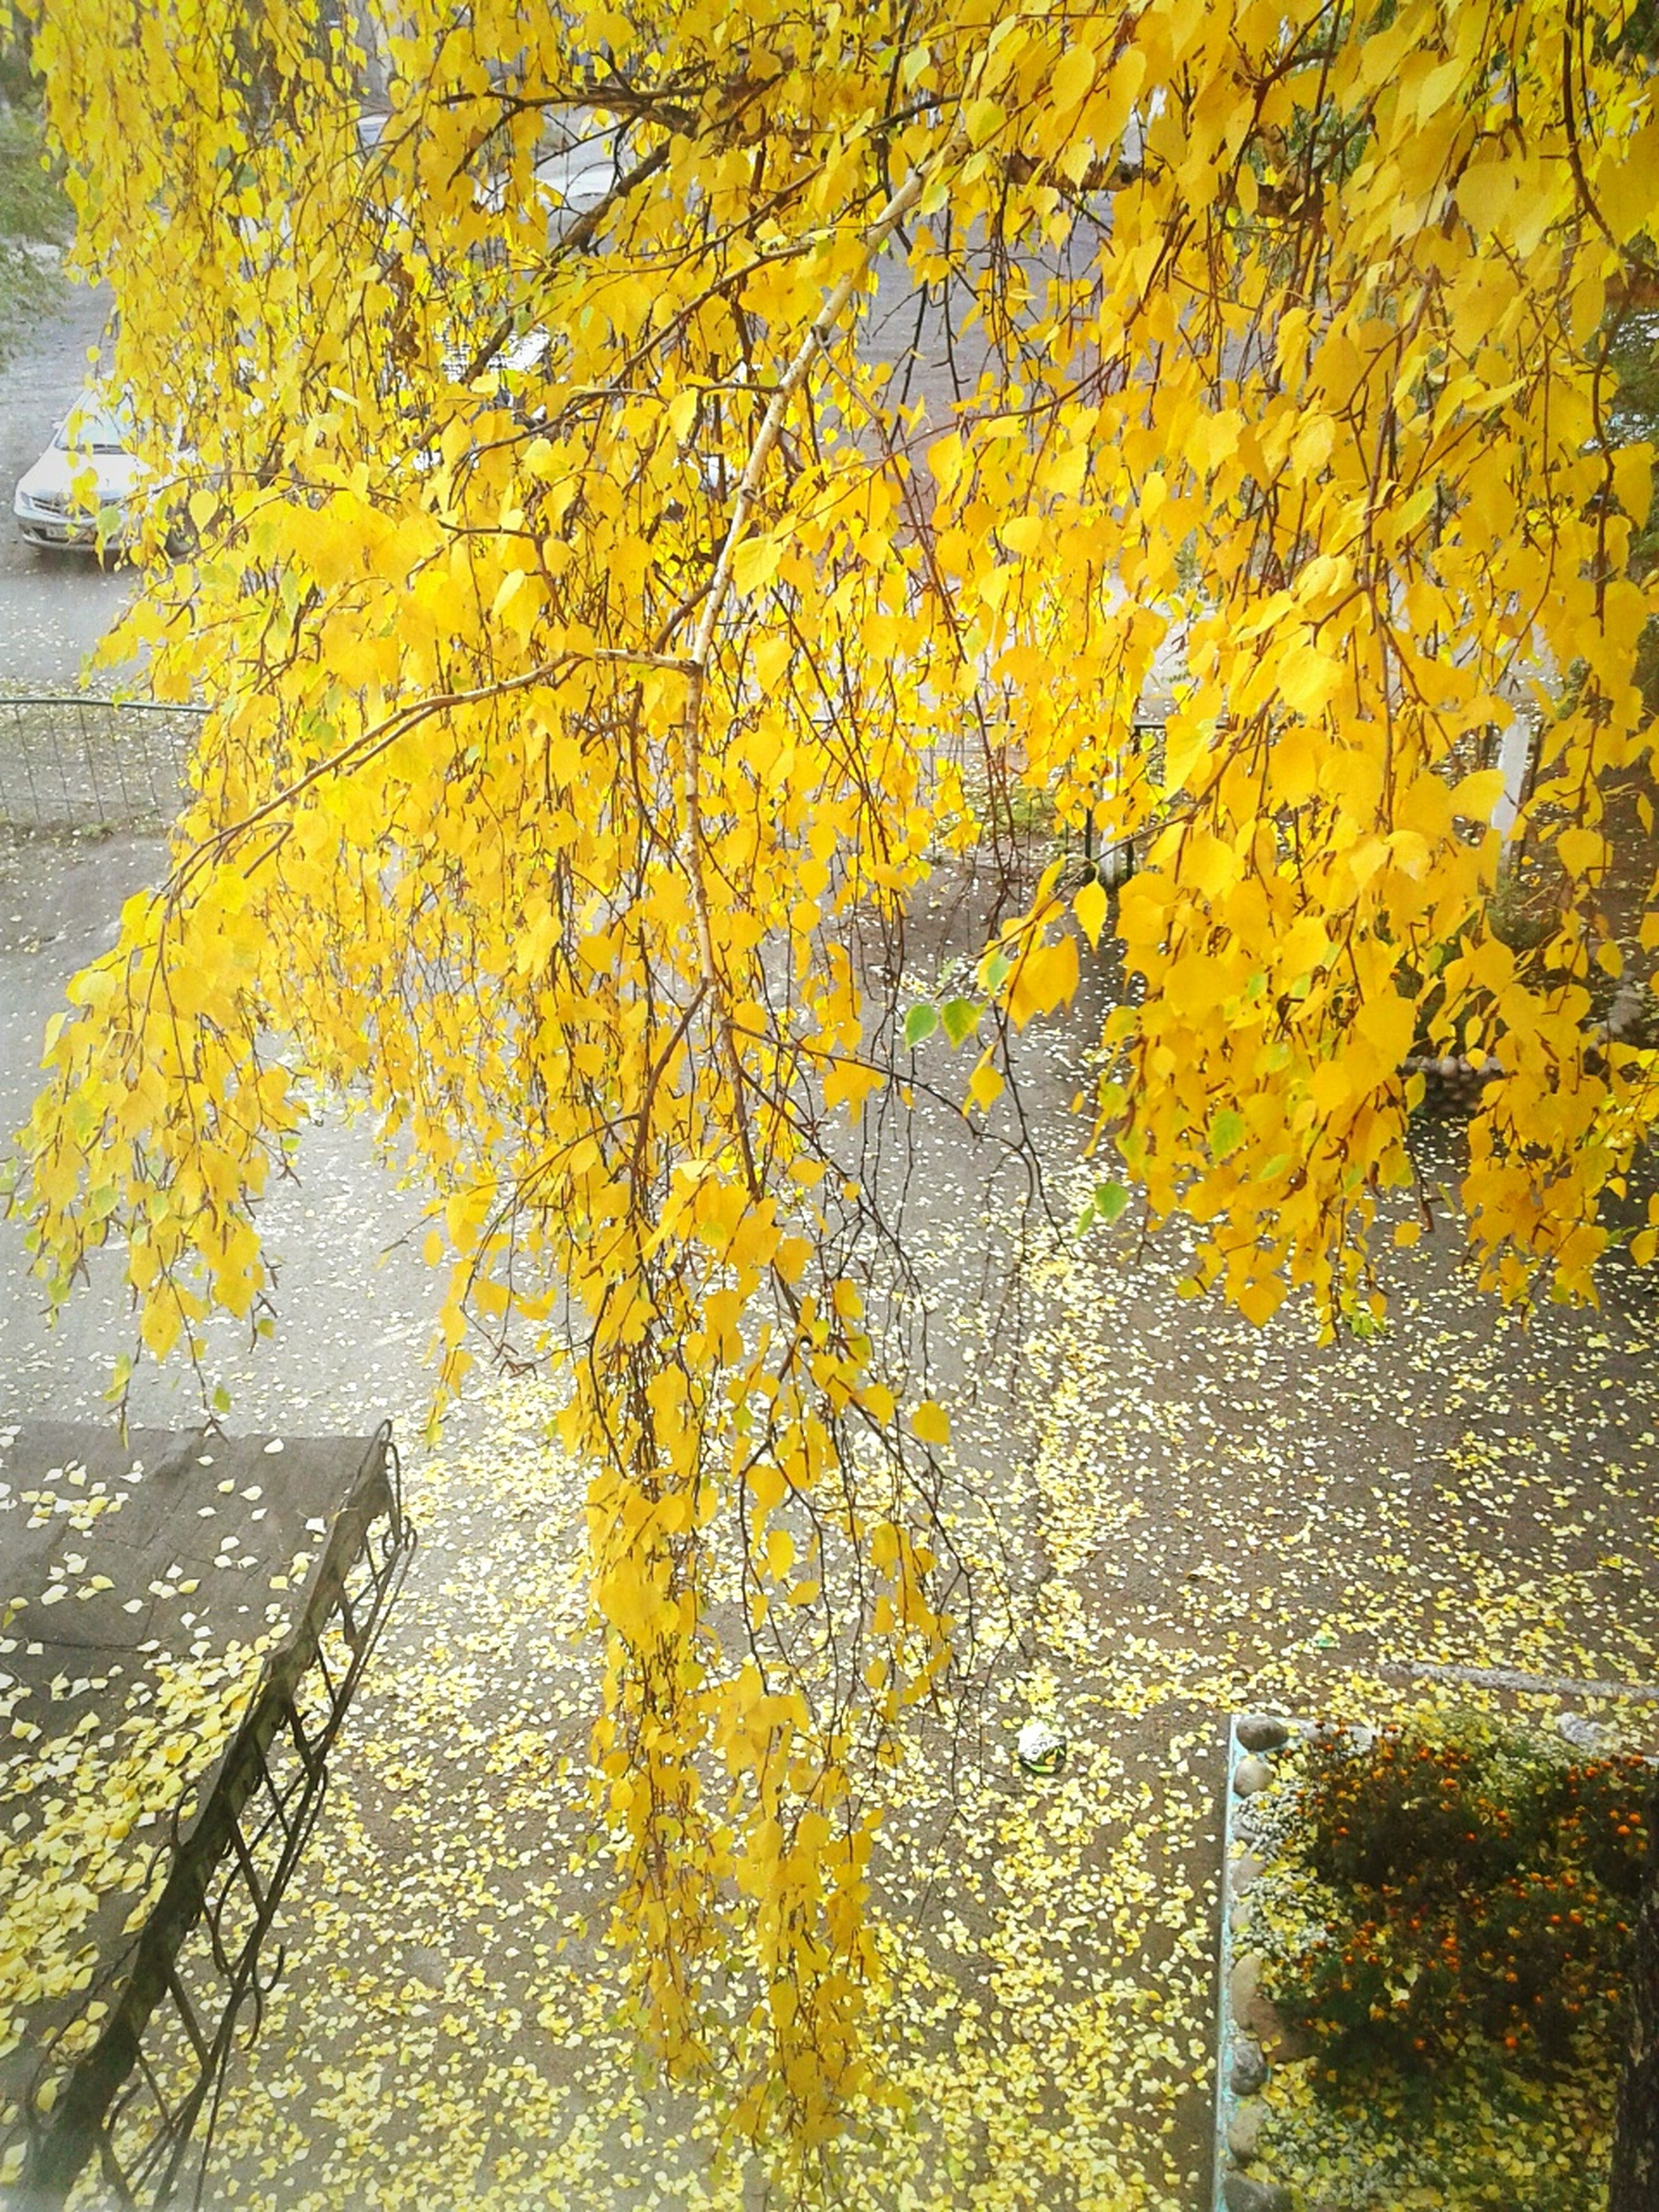 yellow, autumn, leaf, change, growth, tree, season, wall - building feature, built structure, branch, plant, day, outdoors, nature, no people, architecture, ivy, close-up, wall, metal